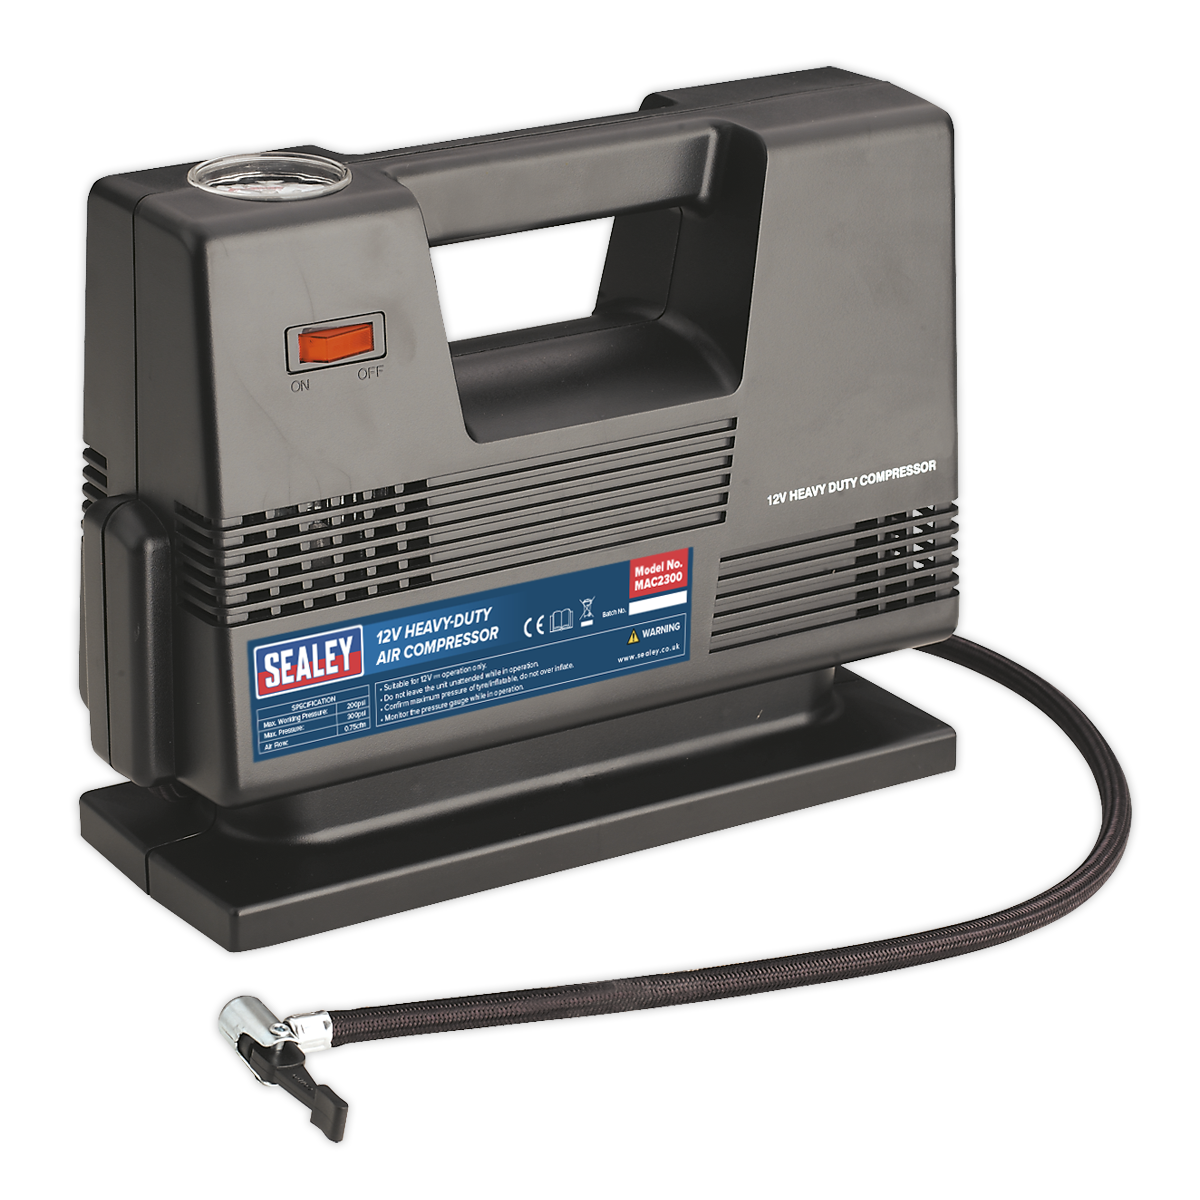 Air Compressor 12V Heavy-Duty